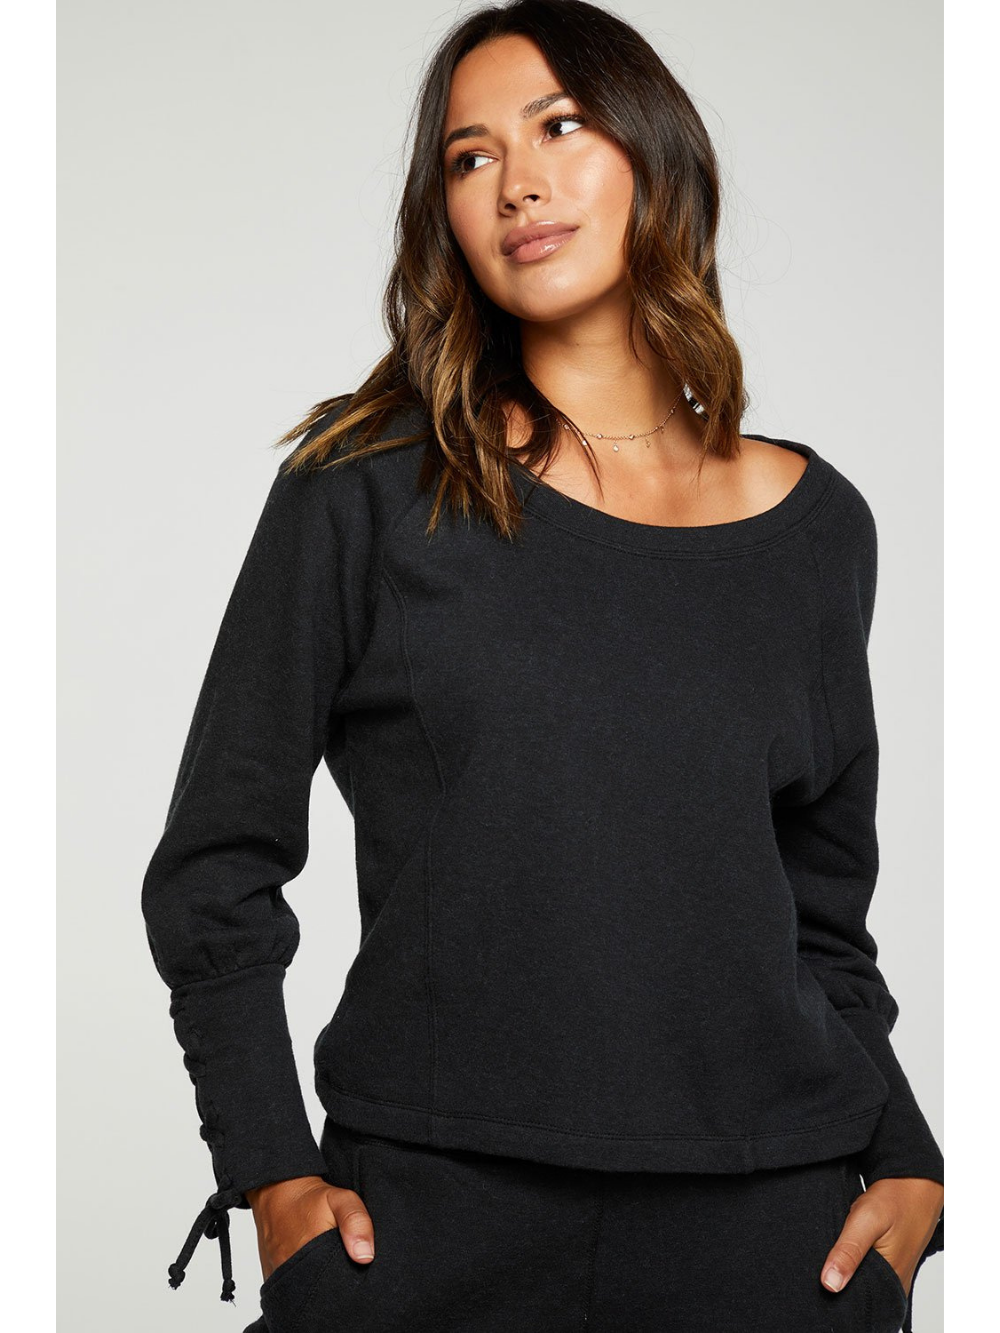 Cashmere Fleece Lace Up Sleeve Pullover